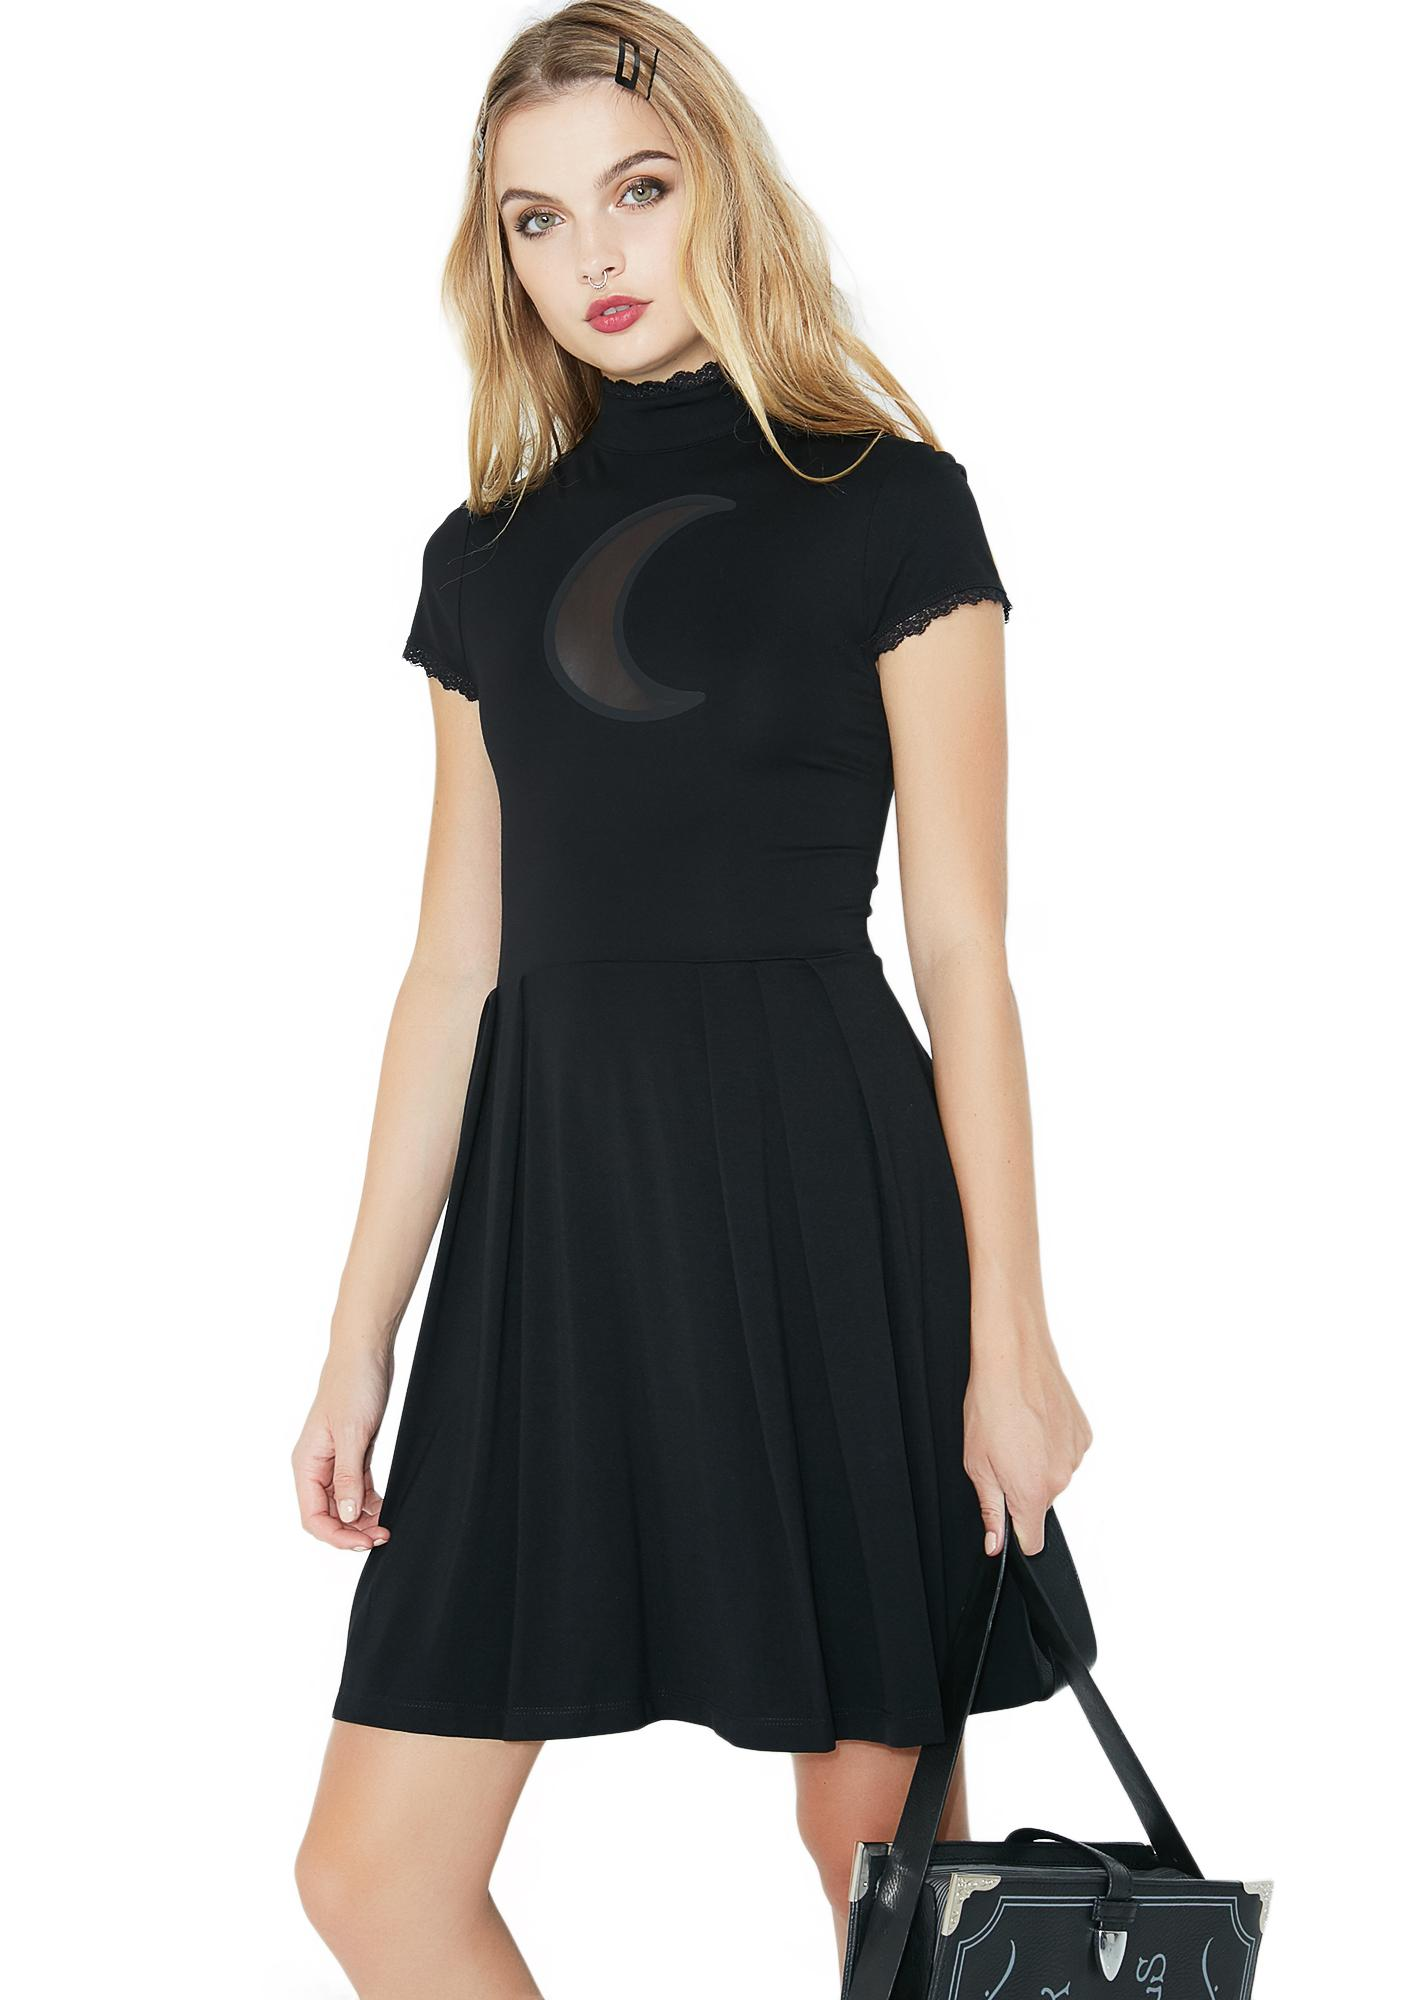 Killstar Neverafter Nytes Skater Dress